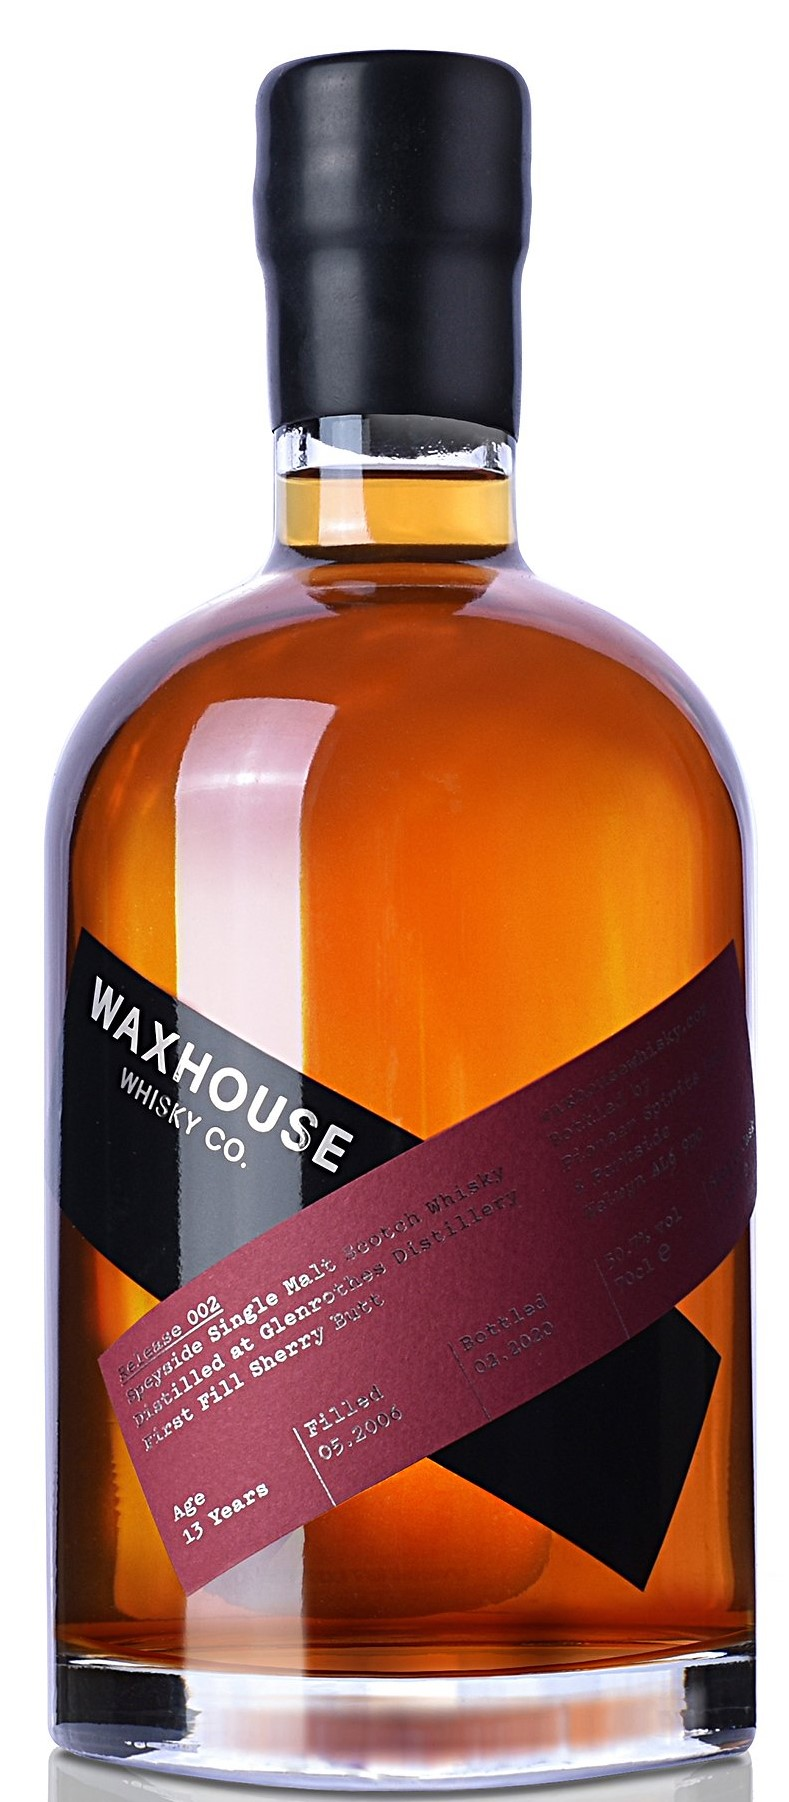 The Dramble reviews Glenrothes 2006 13 year old The Waxhouse Whisky Company